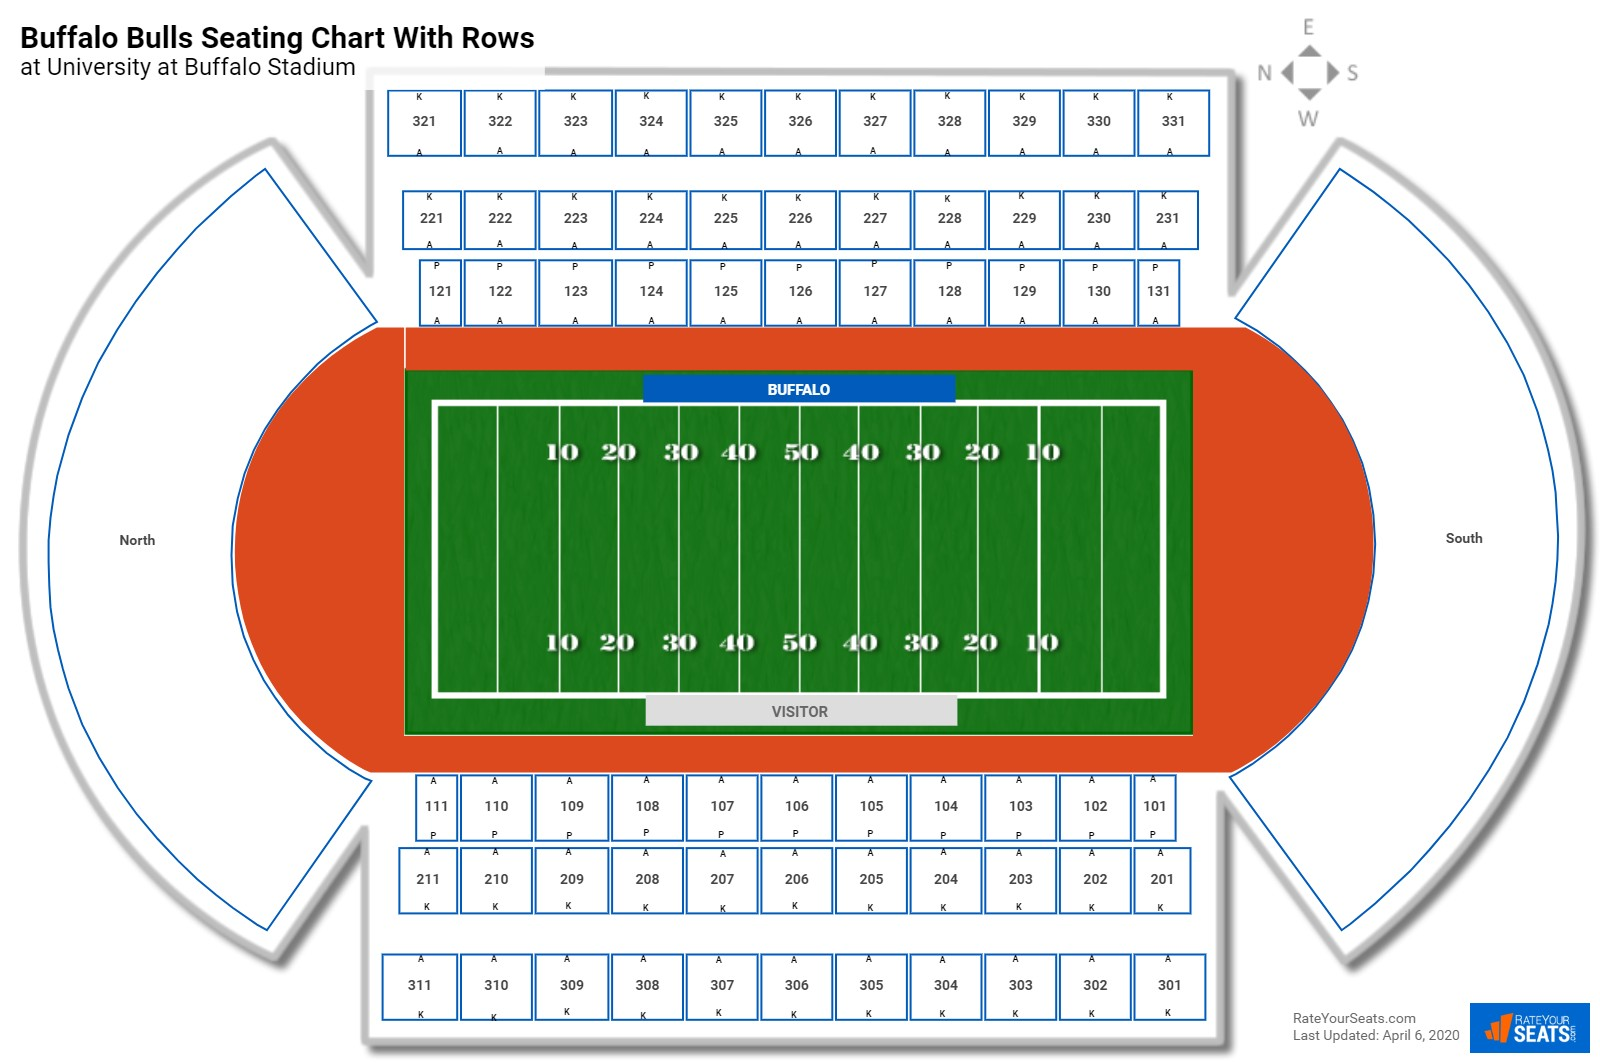 University at Buffalo Stadium seating chart with rows